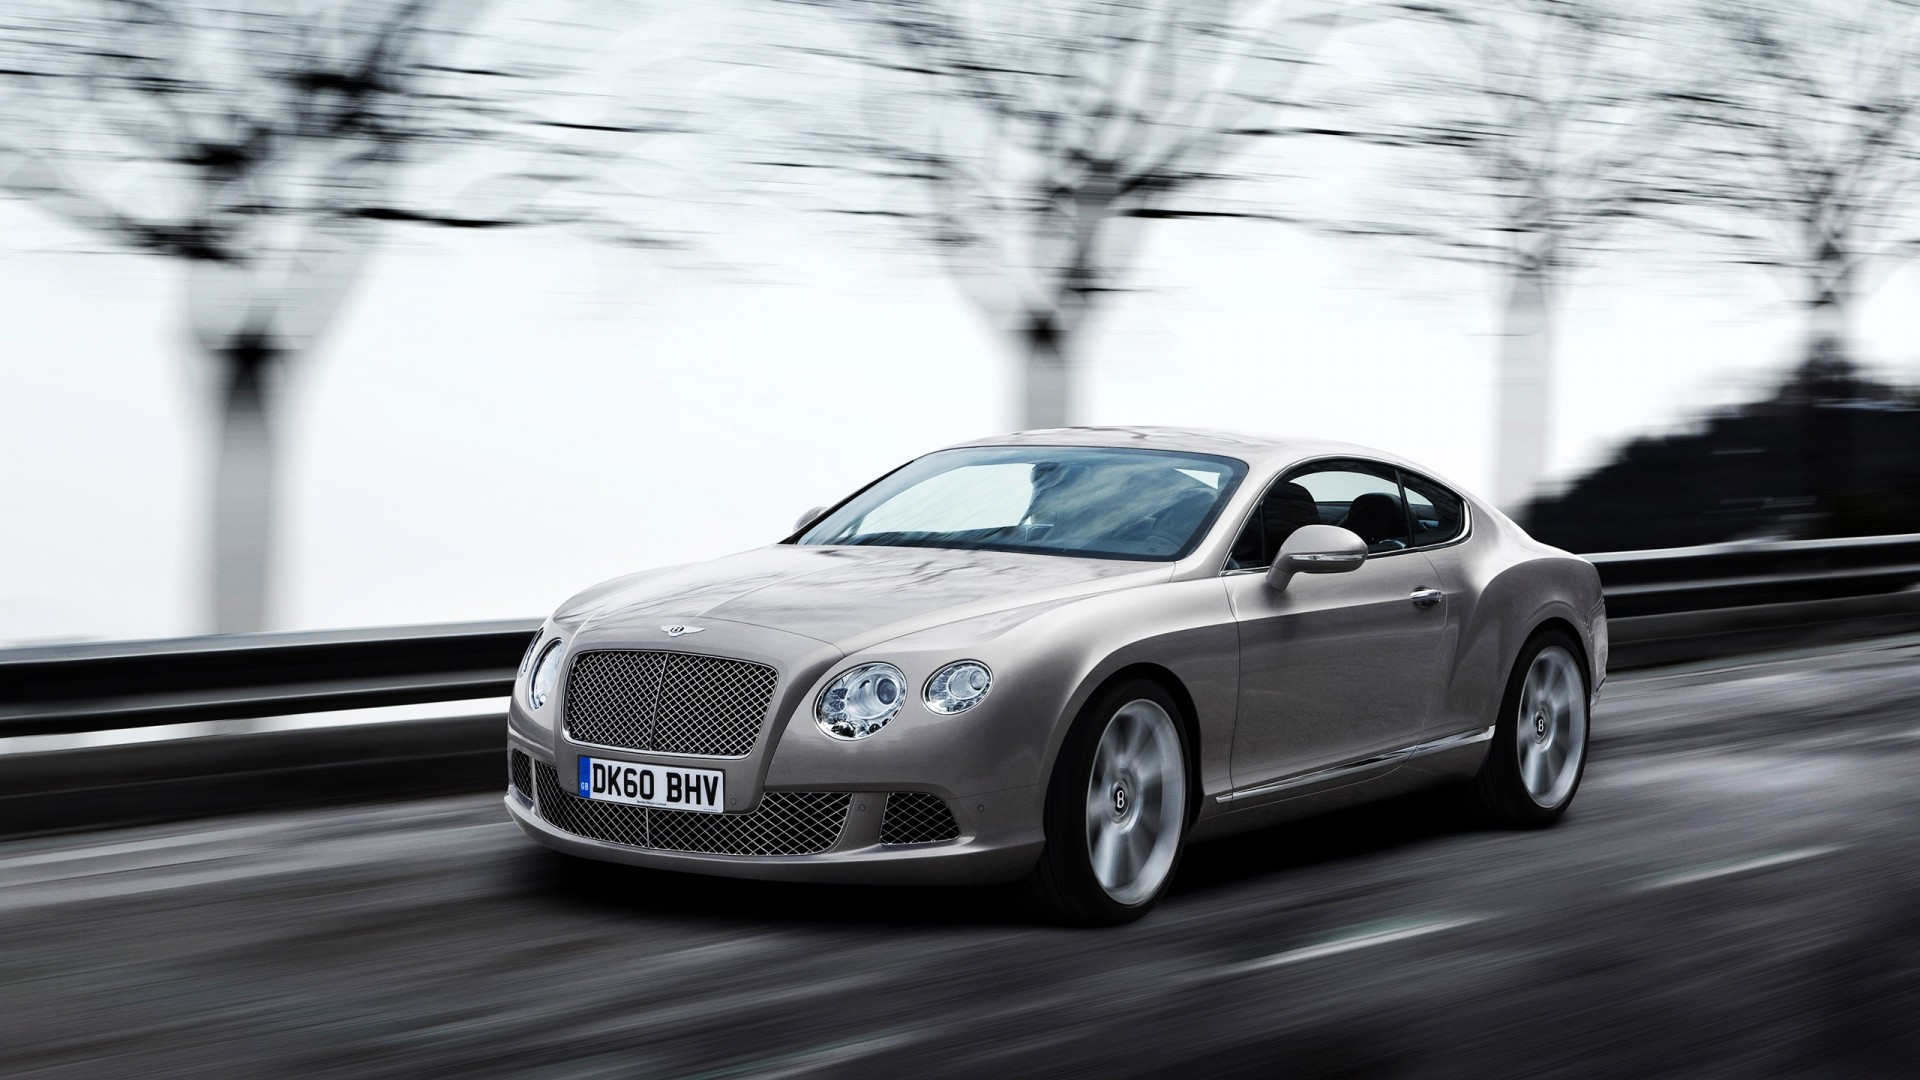 Car wallpaper, gray Bentley moving at high speed